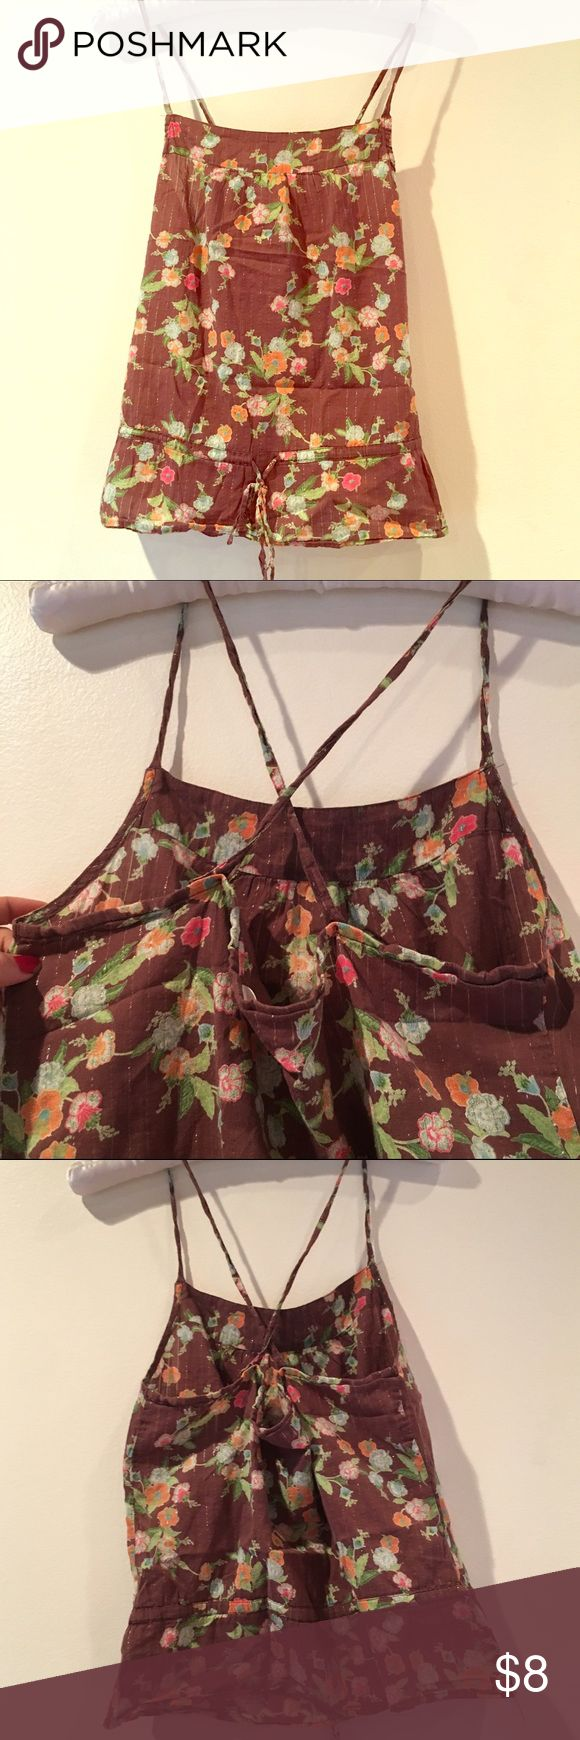 Boho top Brown with floral pattern and silver pinstripes. Drawstring waist, crissXcross back. Arizona Jean Company Tops Tank Tops